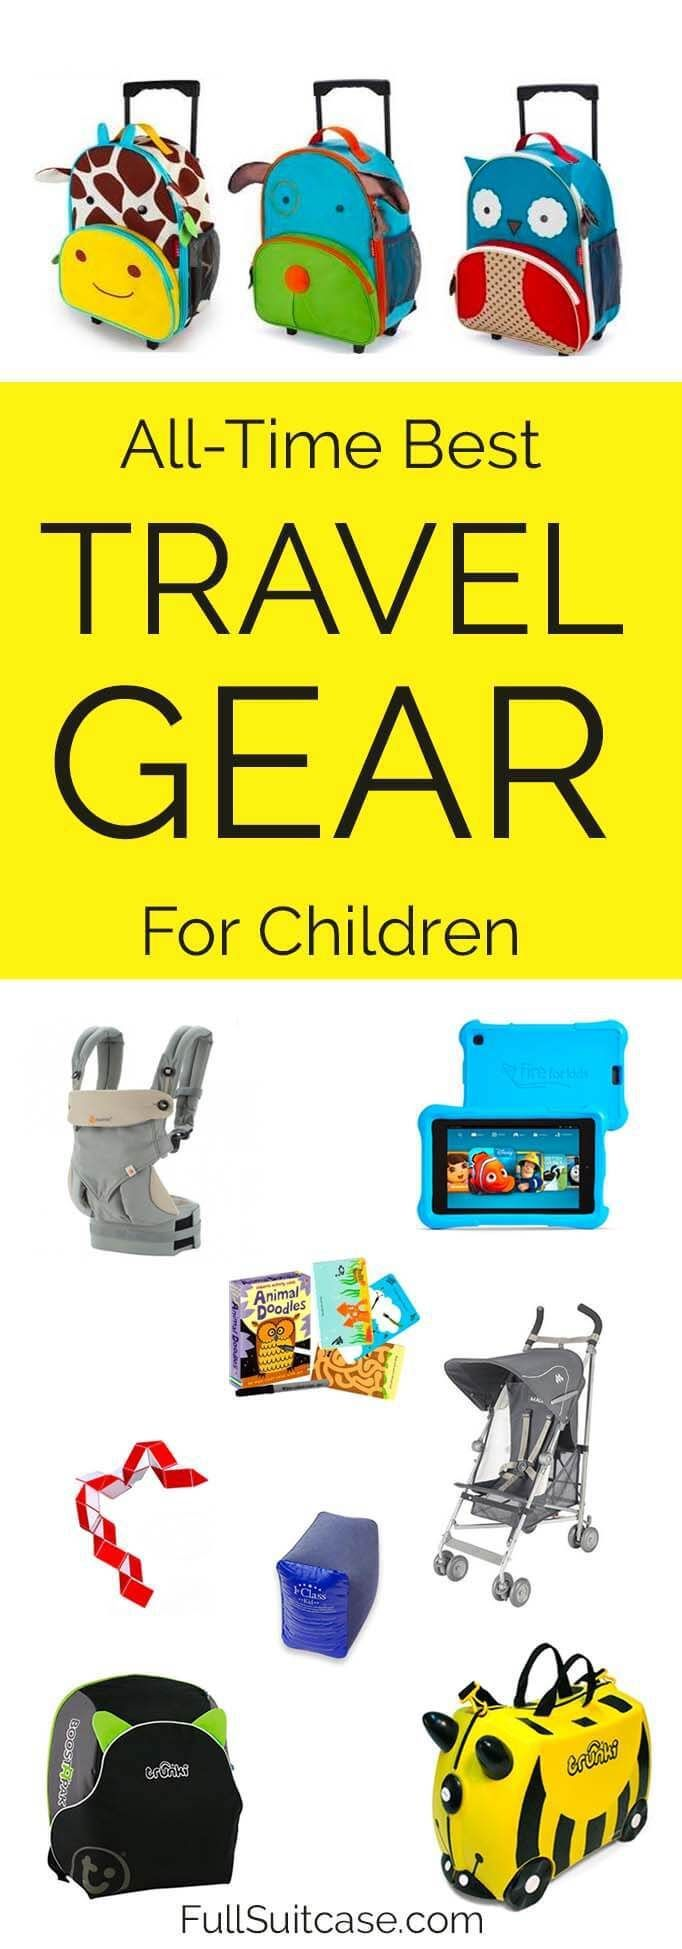 Best kids travel gear and products for babies, toddlers and young children #familytravel #travel #gear #kids #travelgear